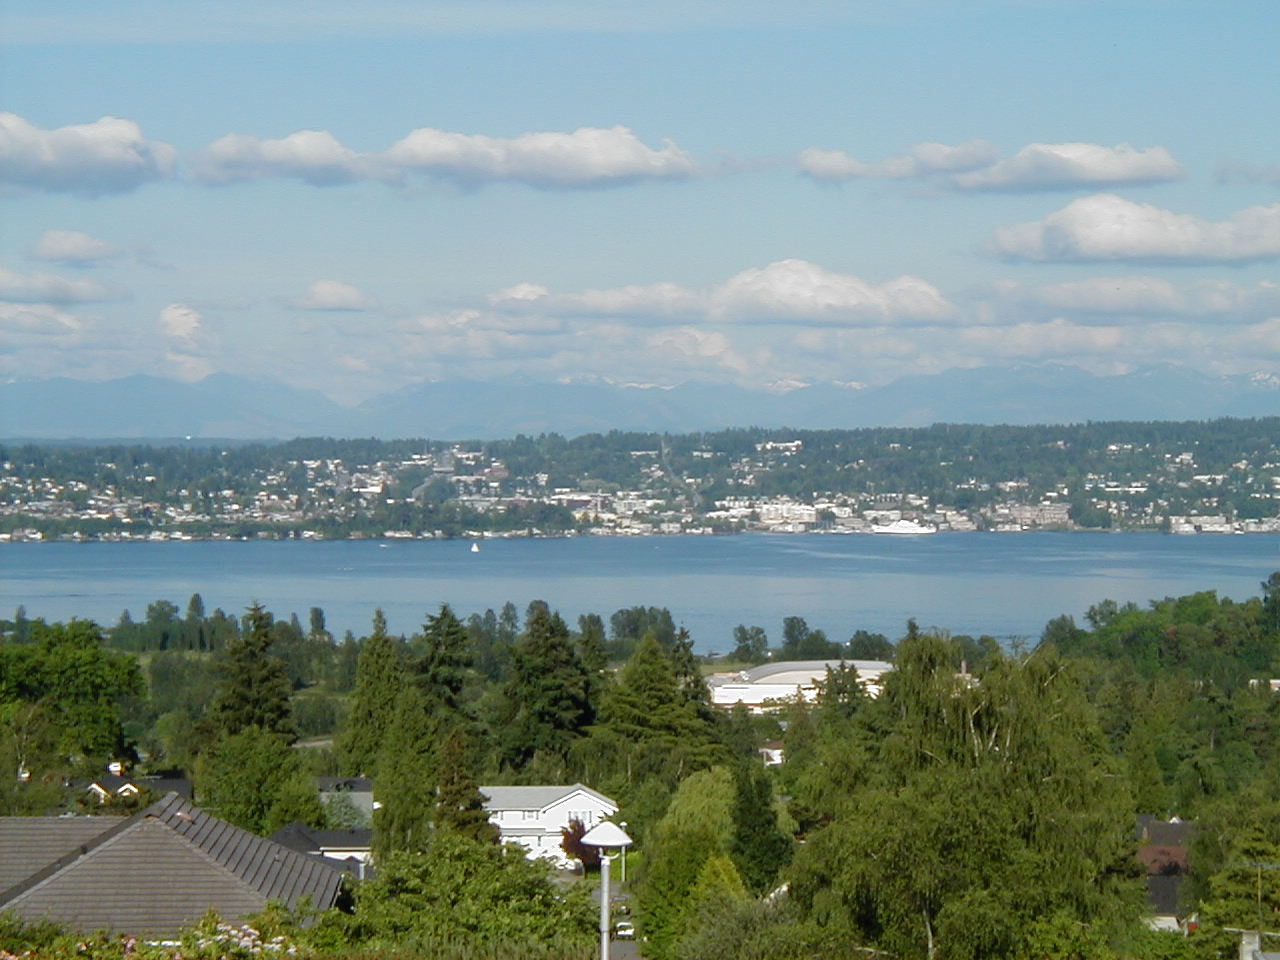 File:Lake Washington.JPG